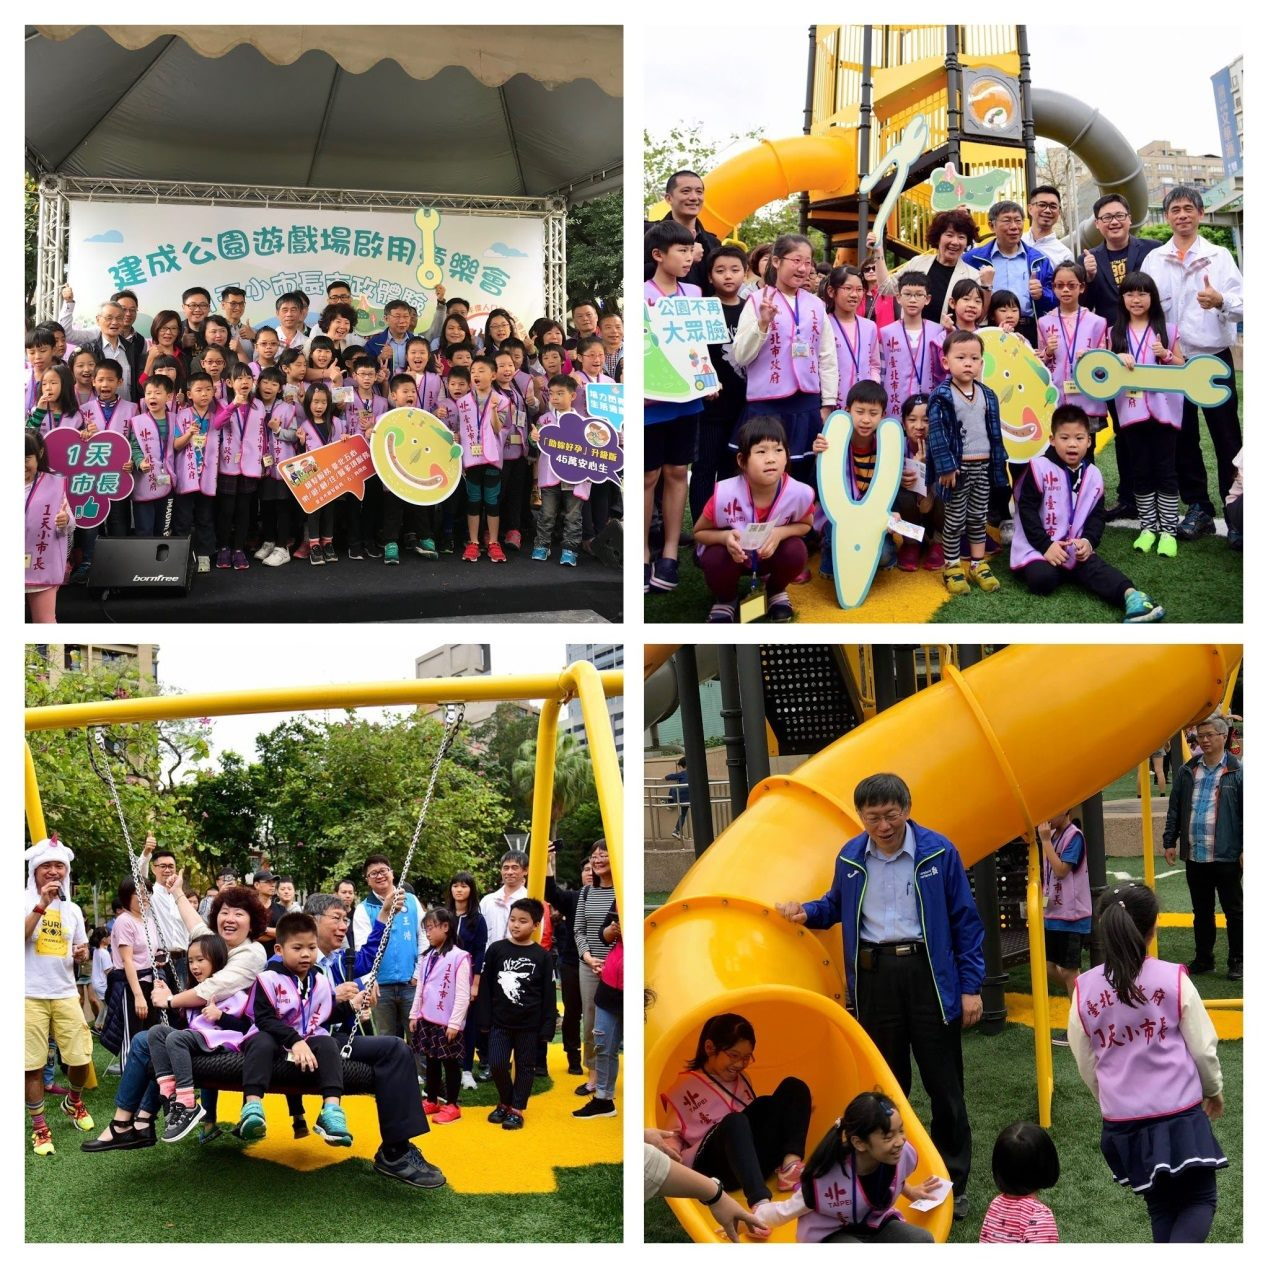 At the opening ceremony of Taipei's new inclusive playground in Jiancheng Park on March 30, Taipei City Mayor Ko Wen-je has fun with children